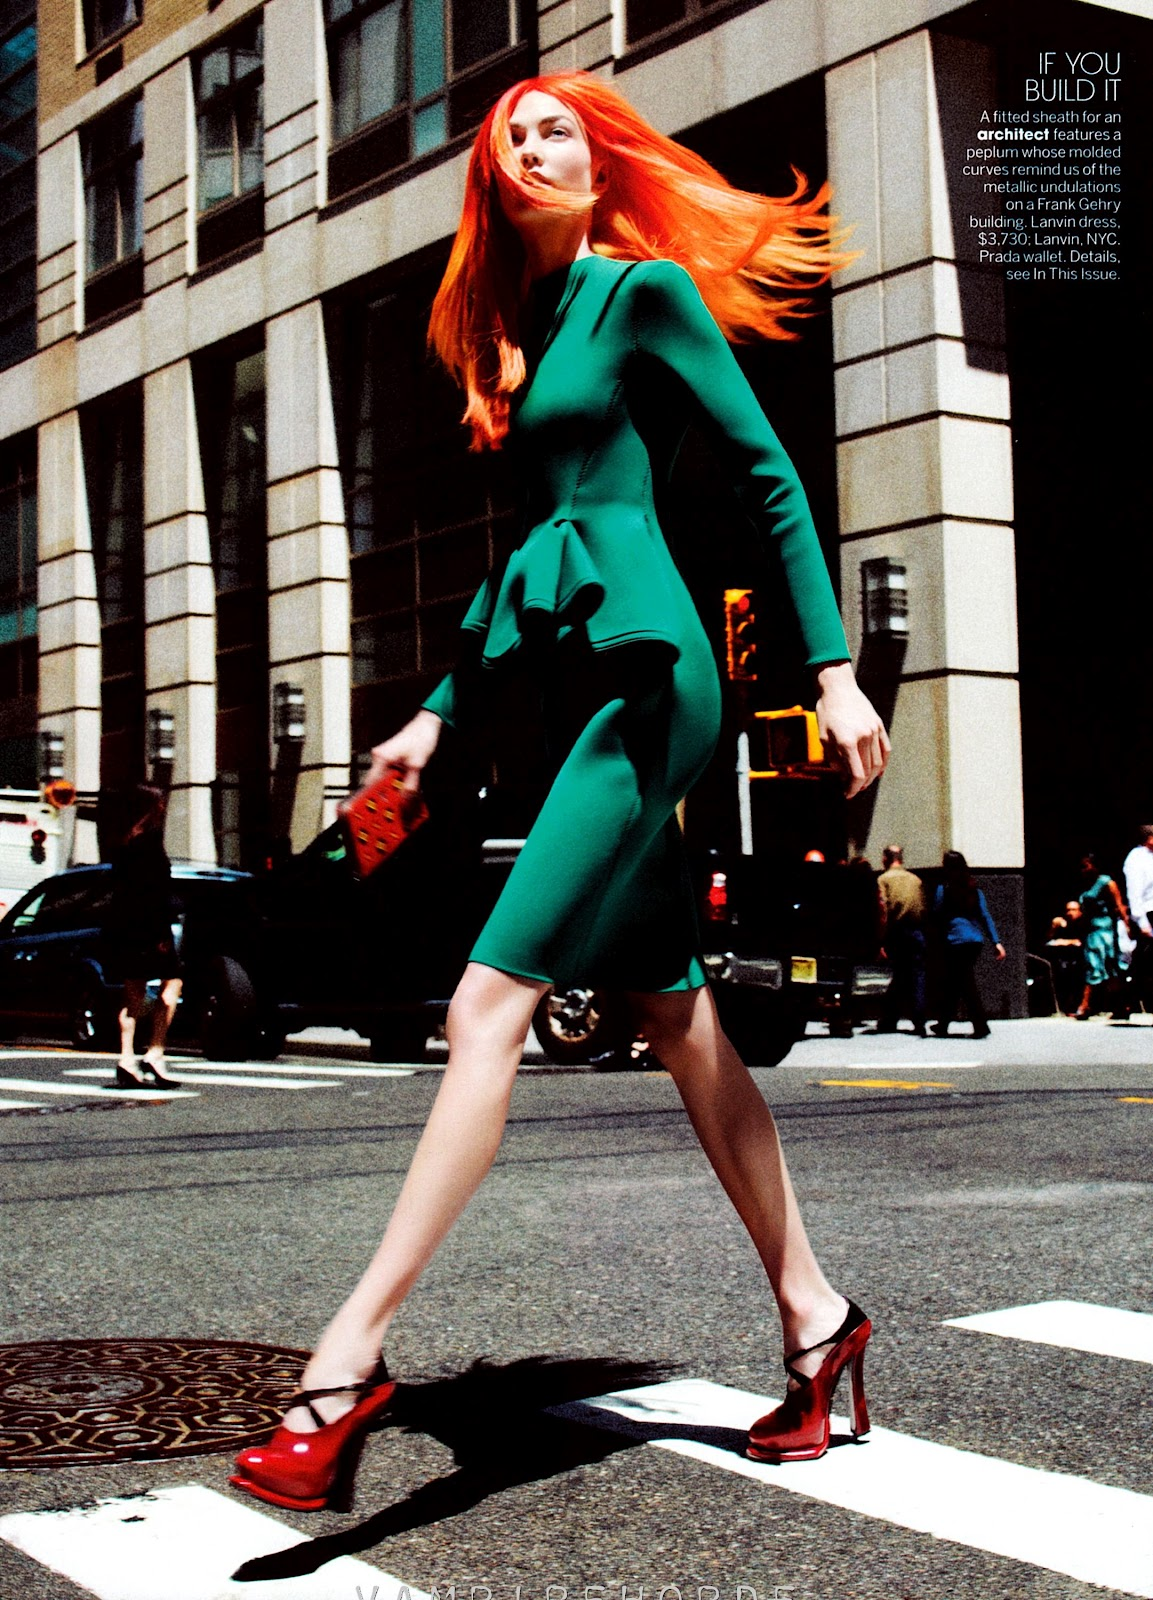 http://4.bp.blogspot.com/-UhvUCOIVN14/UC5ulCshwxI/AAAAAAAAm5E/LOj8vBLGqj0/s1600/karlie-kloss-for-vogue-usa-september-2012-4.jpeg